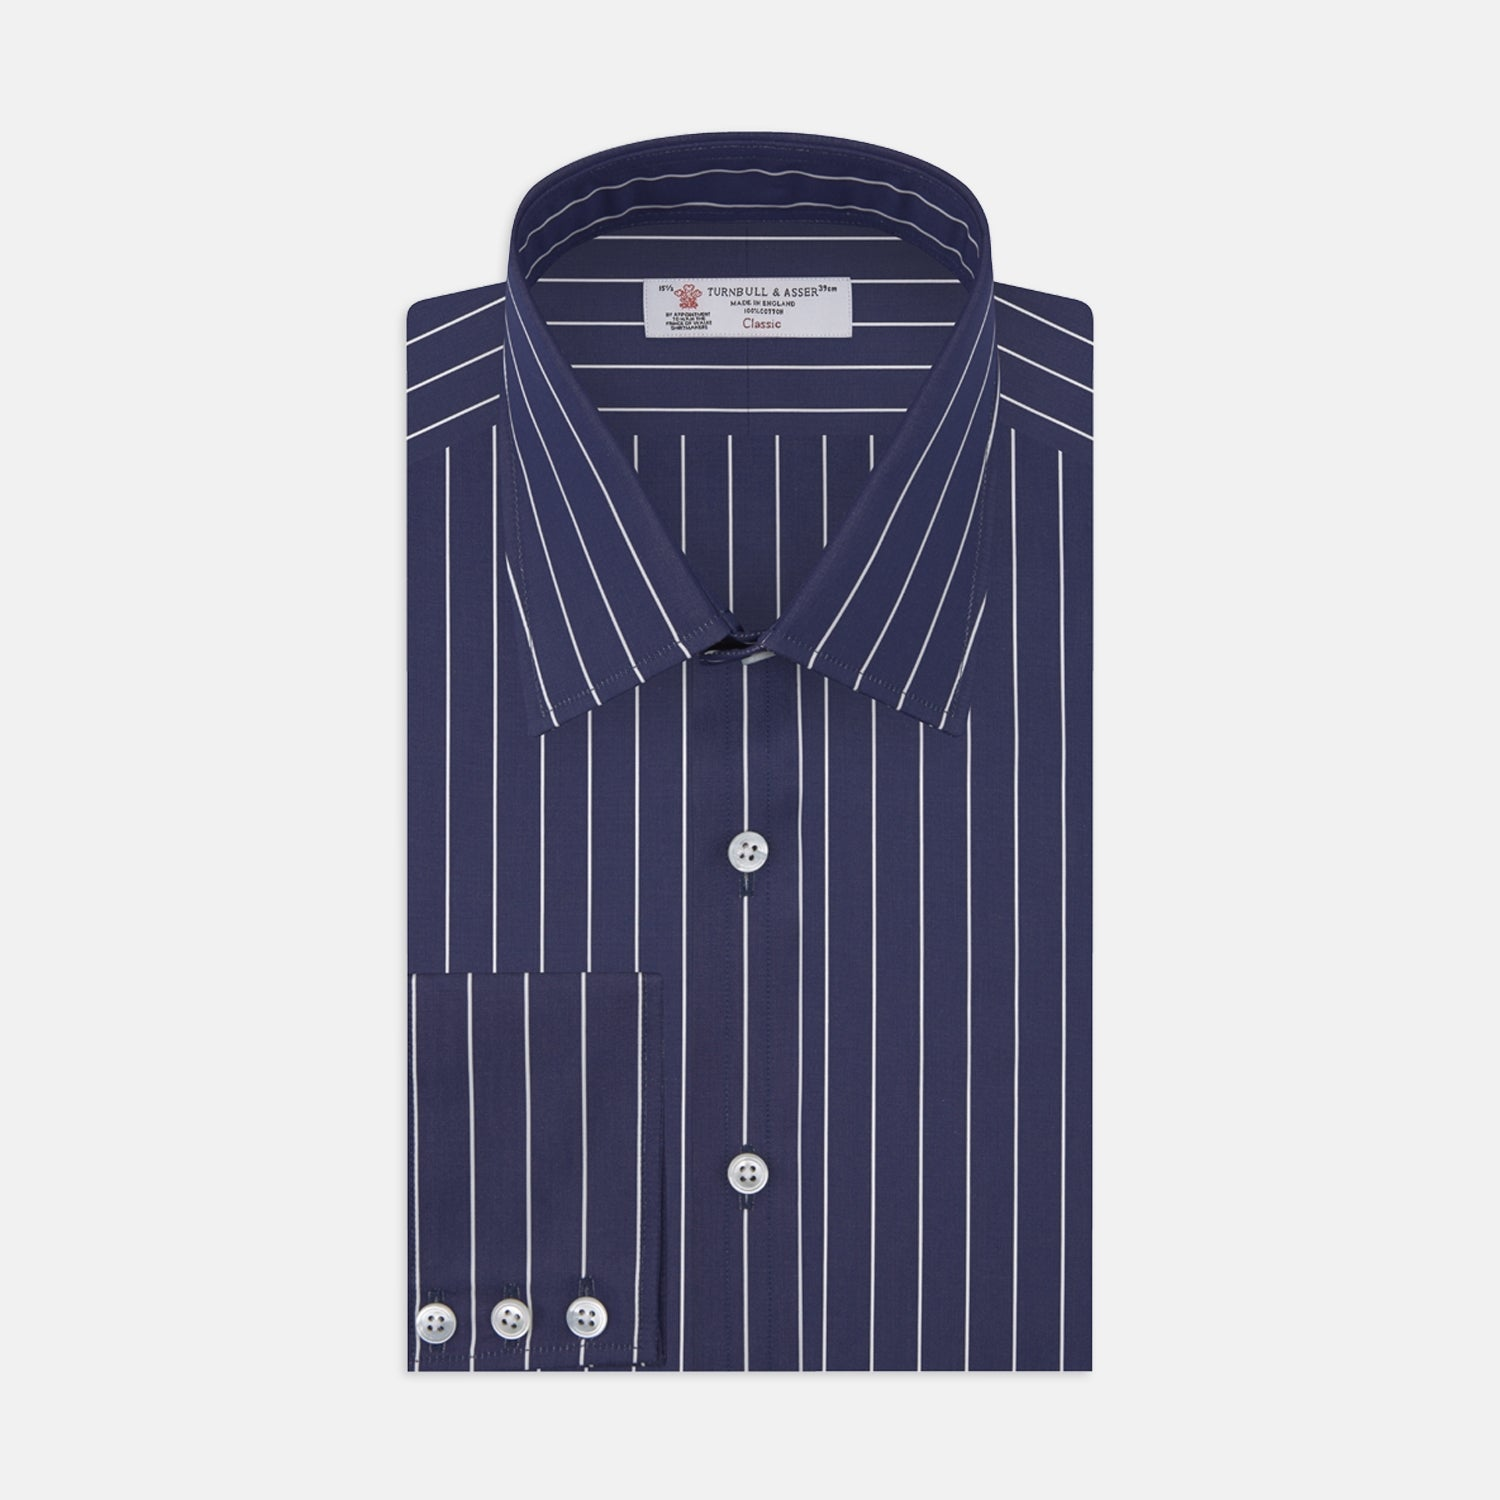 Navy and White Fine Stripe Cotton Shirt with T&A Collar and 3-Button Cuffs